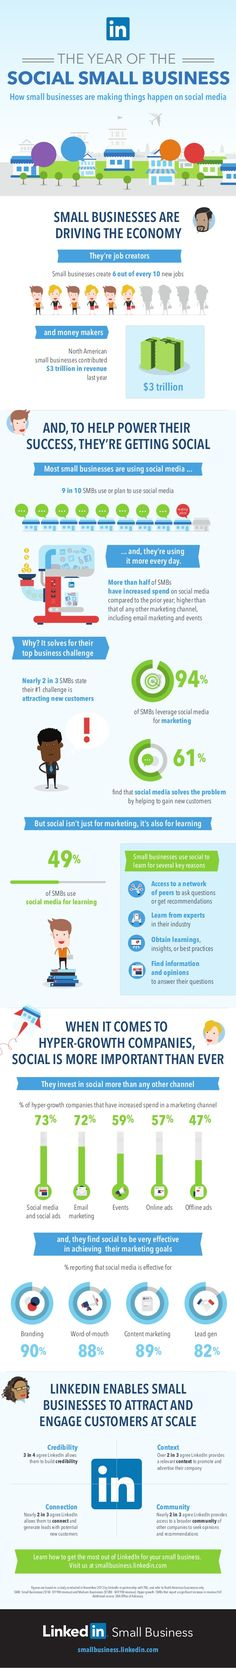 How Small Businesses are Using Social Media [INFOGRAPHIC]